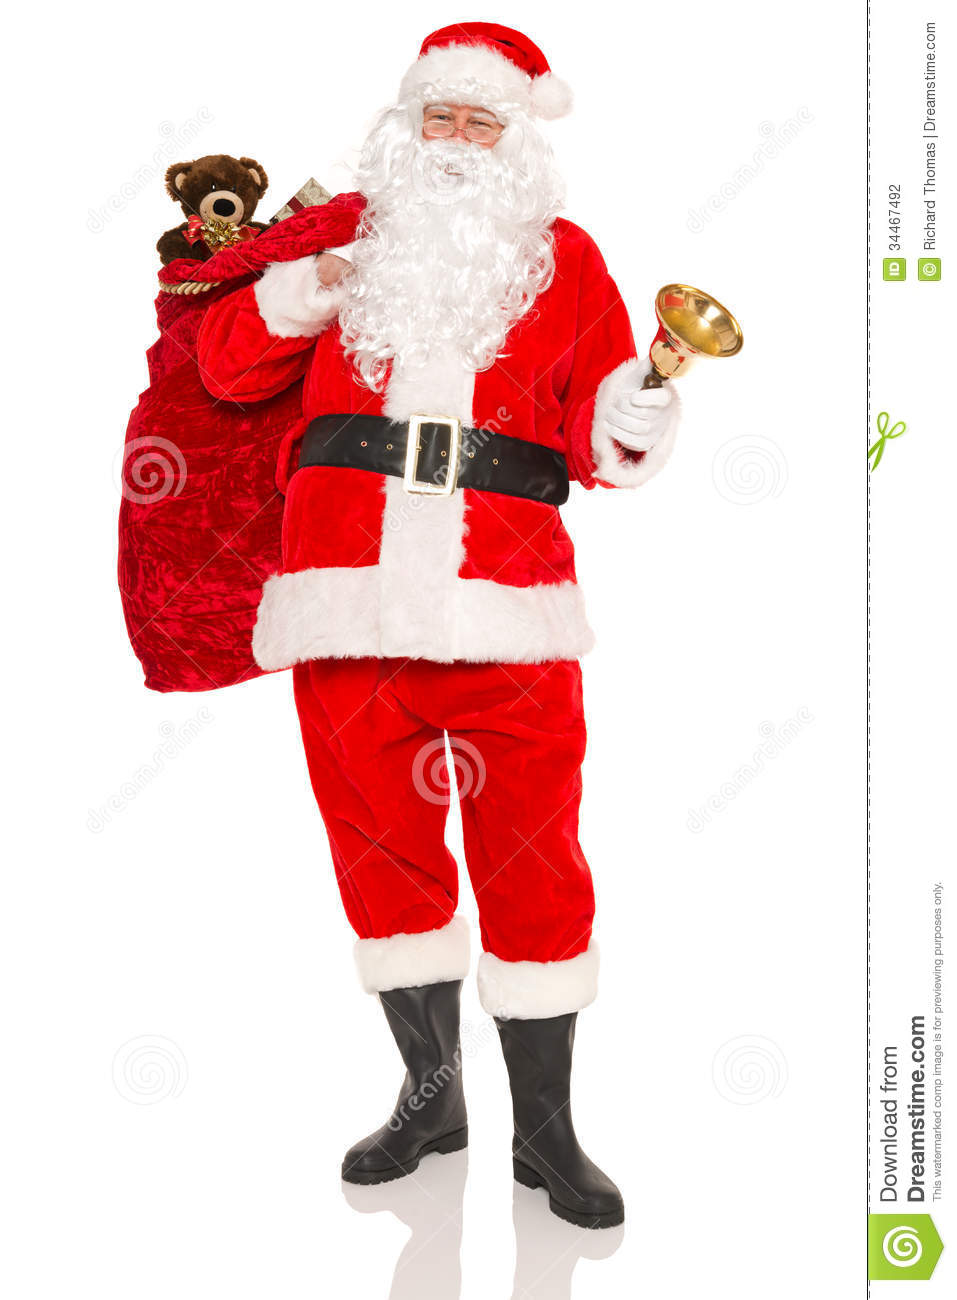 Presents Toys Christmas : Santa carrying a sack full of gifts isolated stock photo